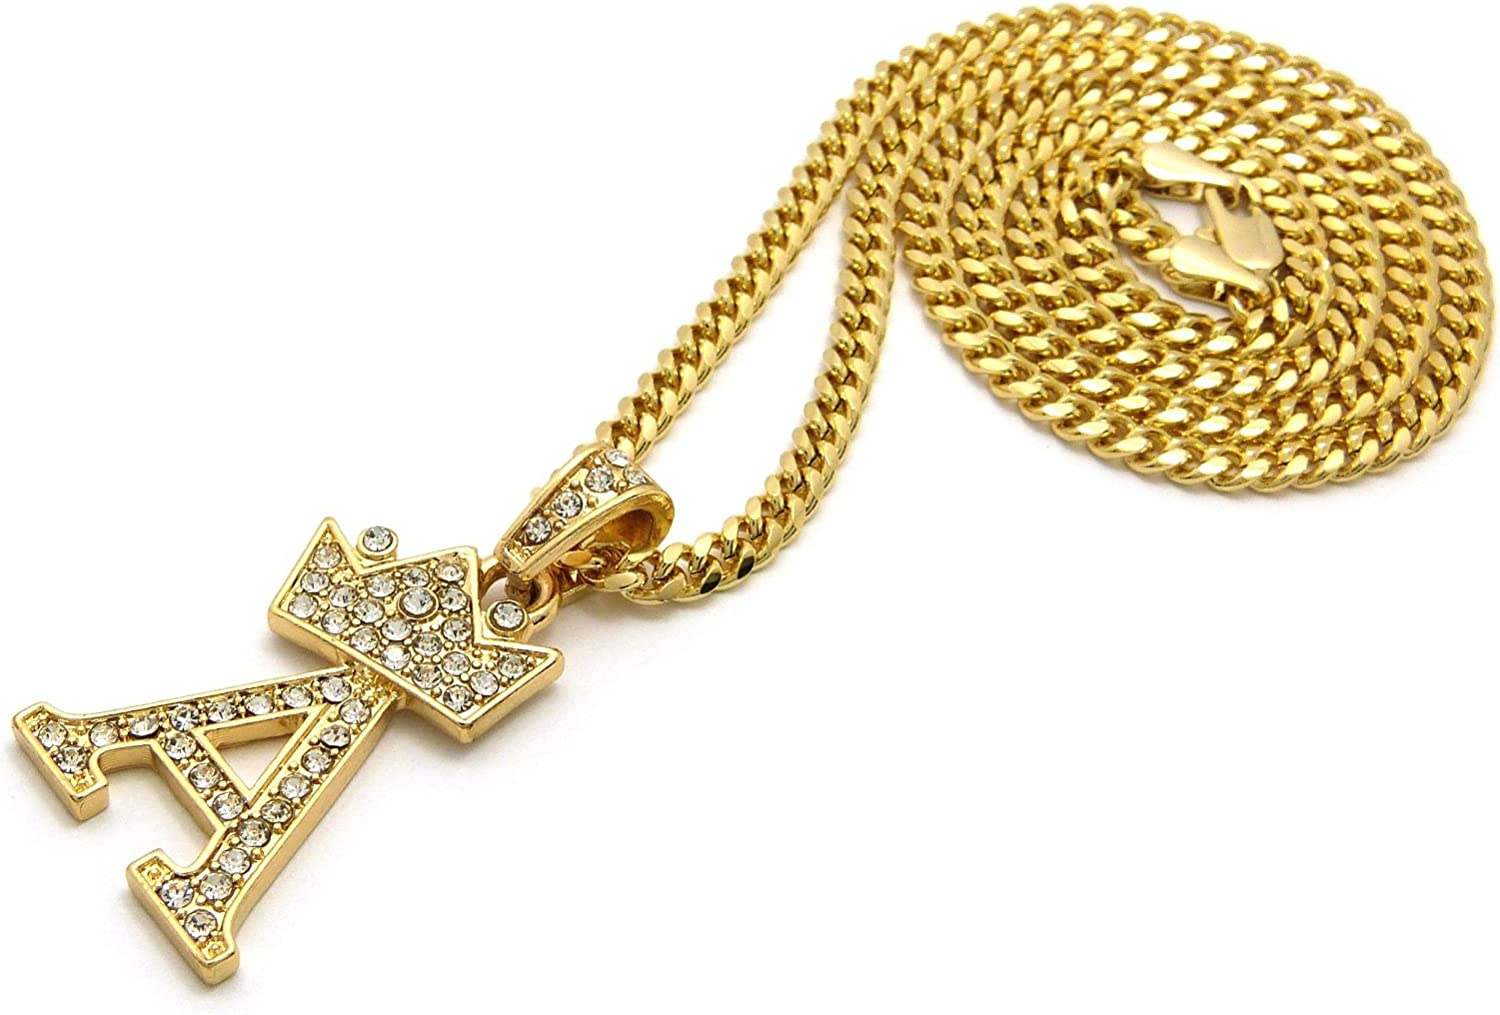 Gold-Tone NYFASHION101 Stone Stud Tilted Crown Initial Micro Pendant w// 3mm 24 Cuban Chain Necklace